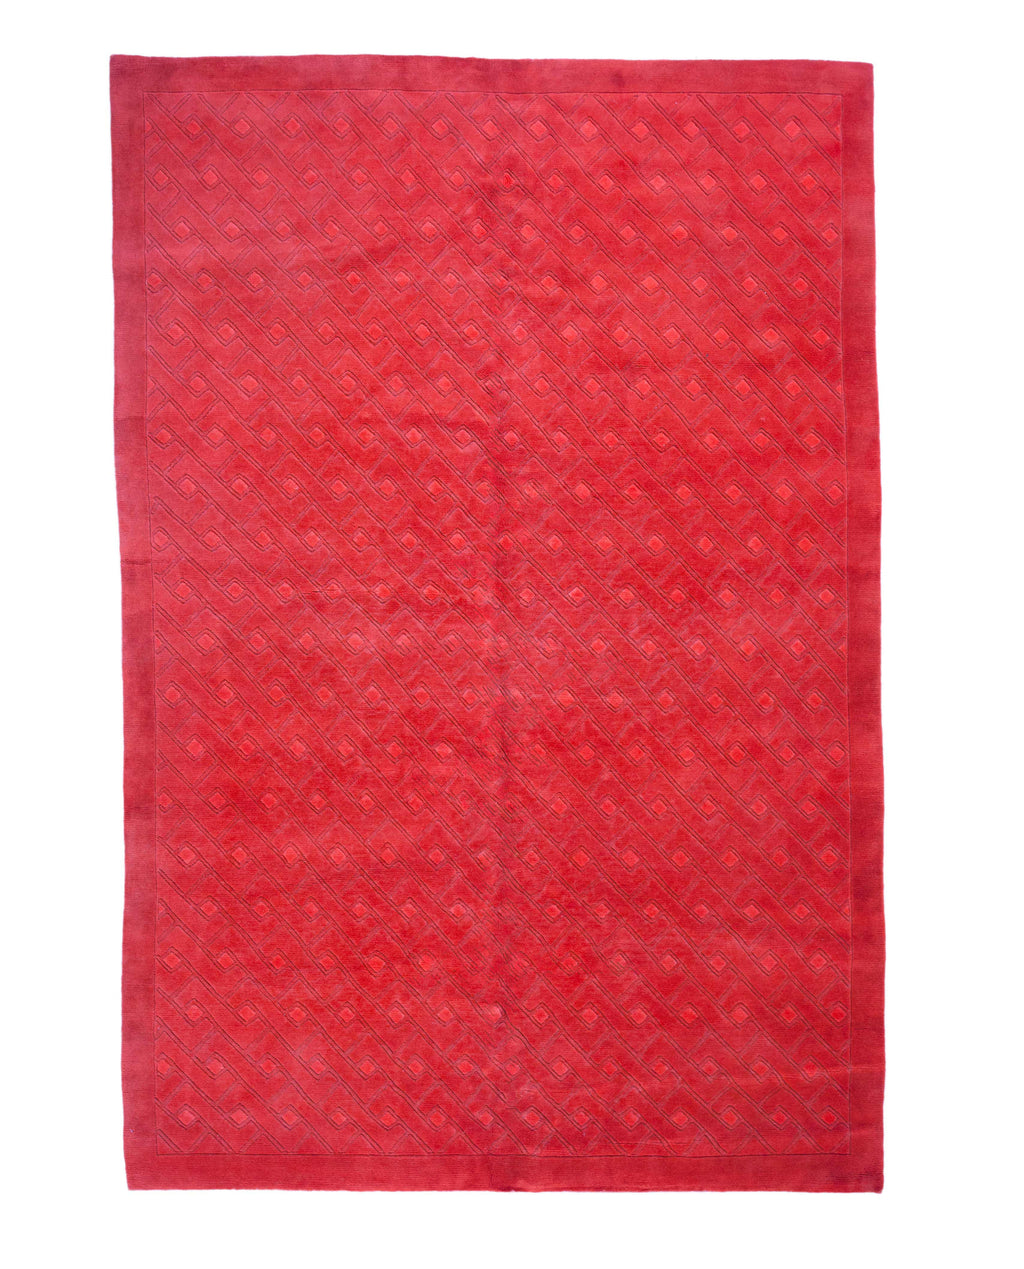 6x9 Overdyed Carved Modern Watermelon Red Rug 1137 - west of hudson